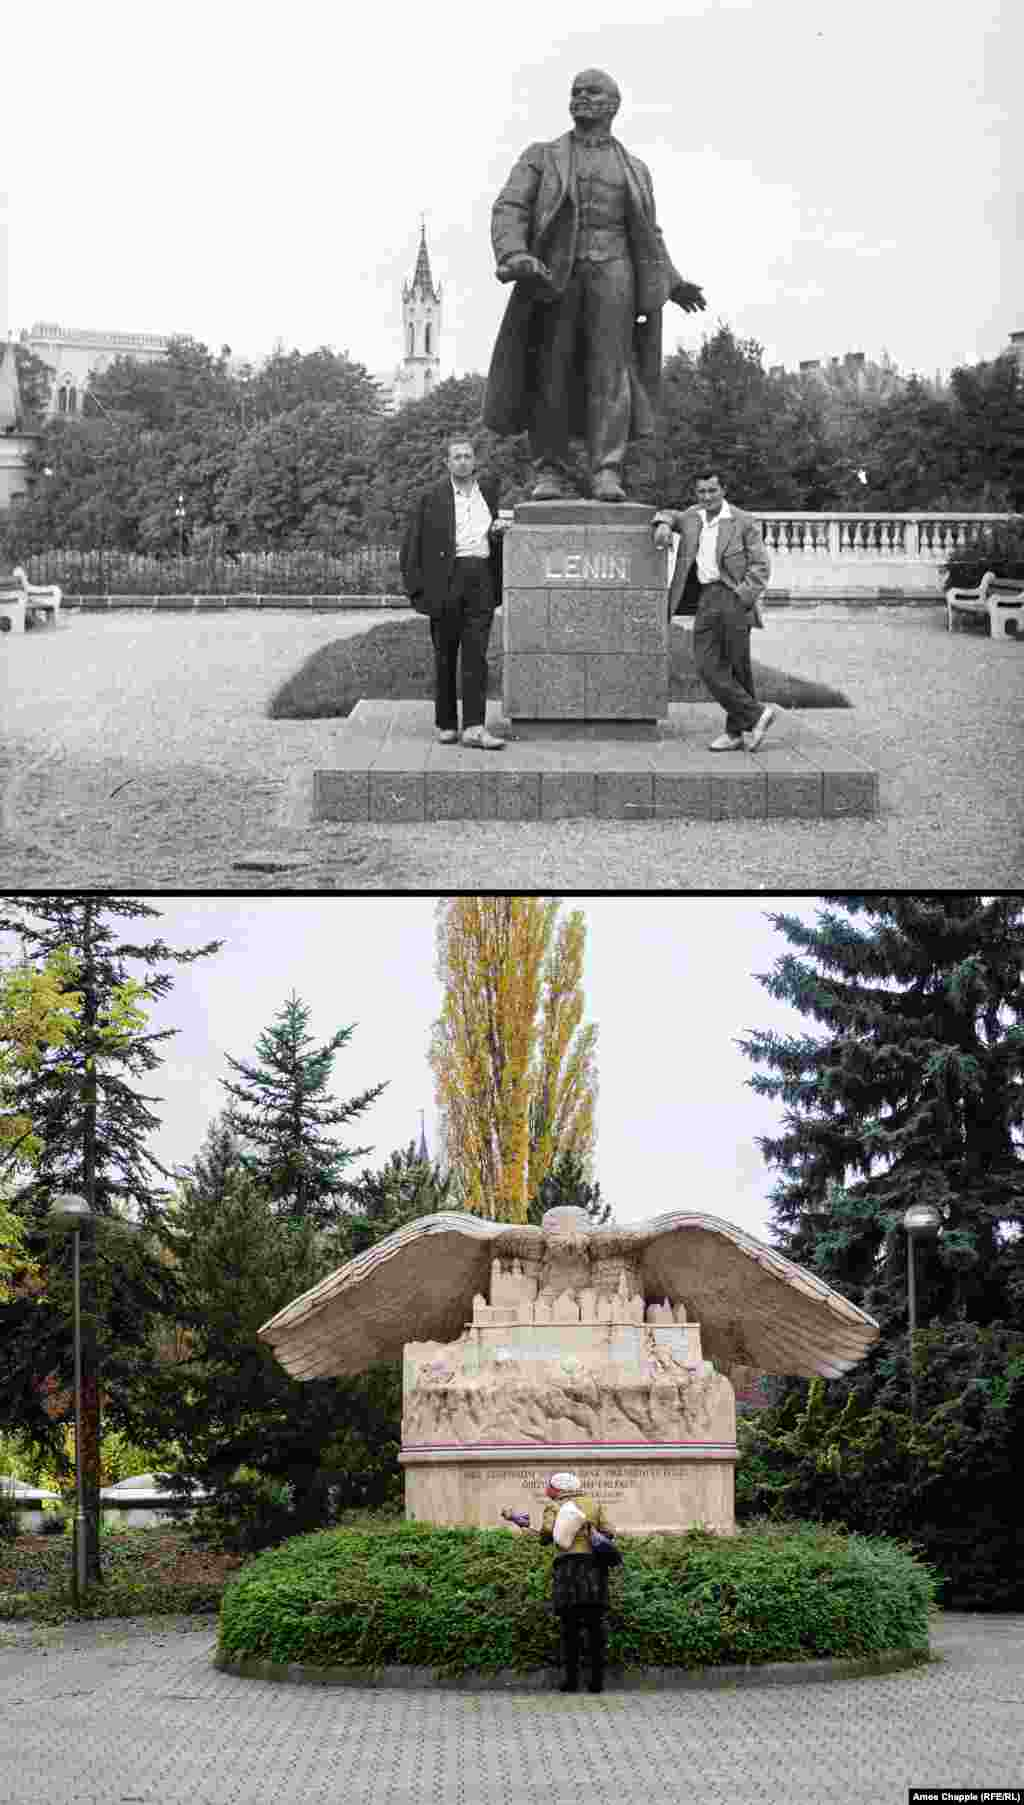 Veszprem 1962-2019​ A striding Lenin (top) that was replaced by a memorial to schoolteacher Arpad Brusznyai in the western town of Veszprem. Brusznyai was involved in the 1956 uprising in the city and was hanged by communist authorities in 1958. 1962 photo: Fortepan/Marton Gabor